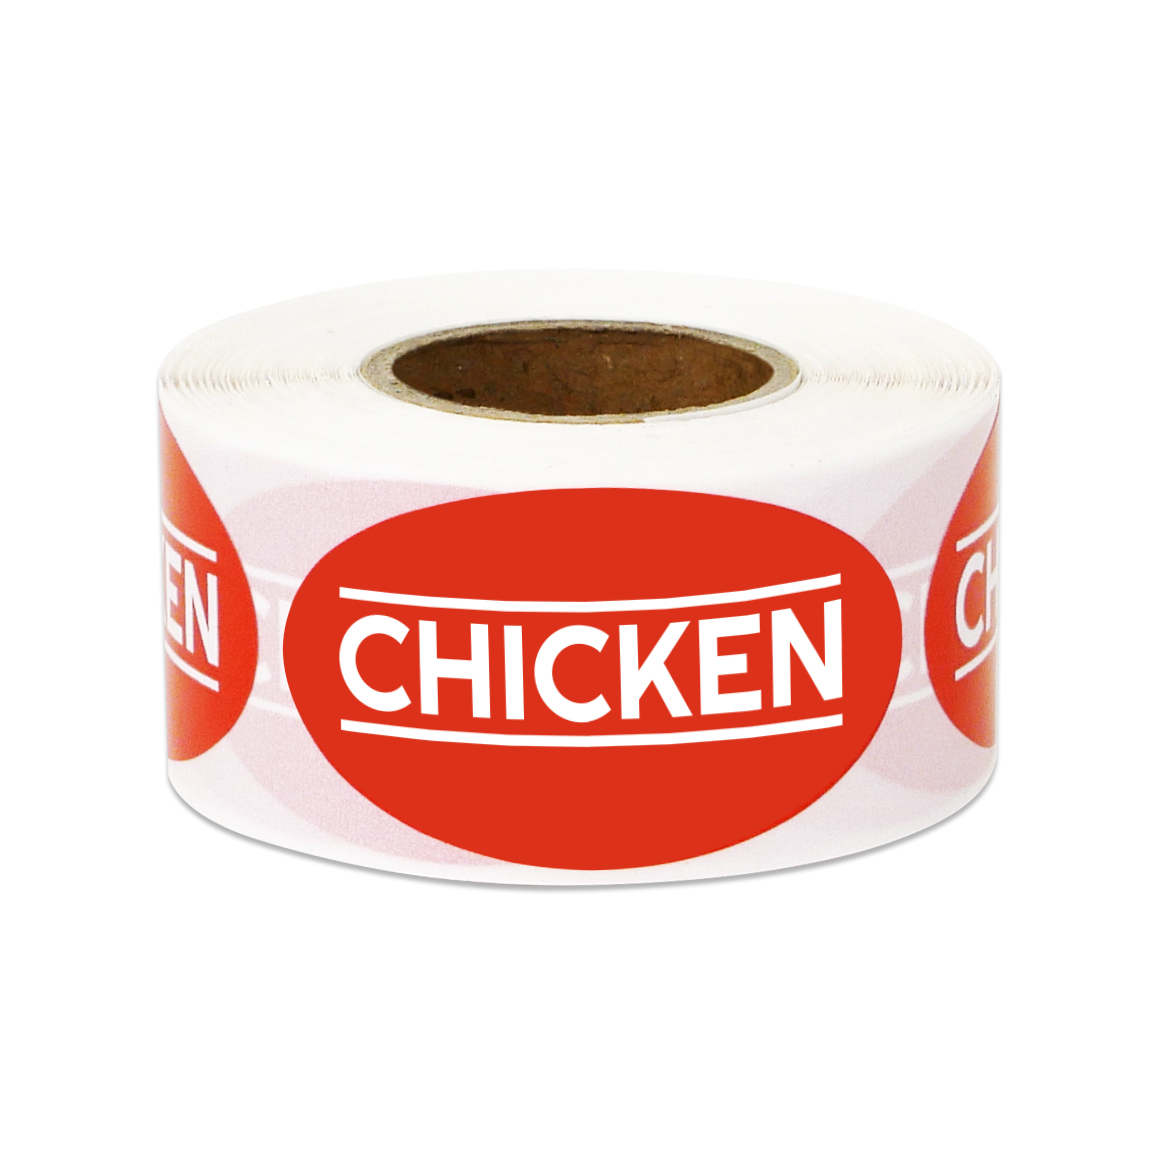 """1.75"""" x 1"""" Chicken Stickers Labels for Food Packaging, Food Labeling, Butchers etc. (1 Roll / Red)"""